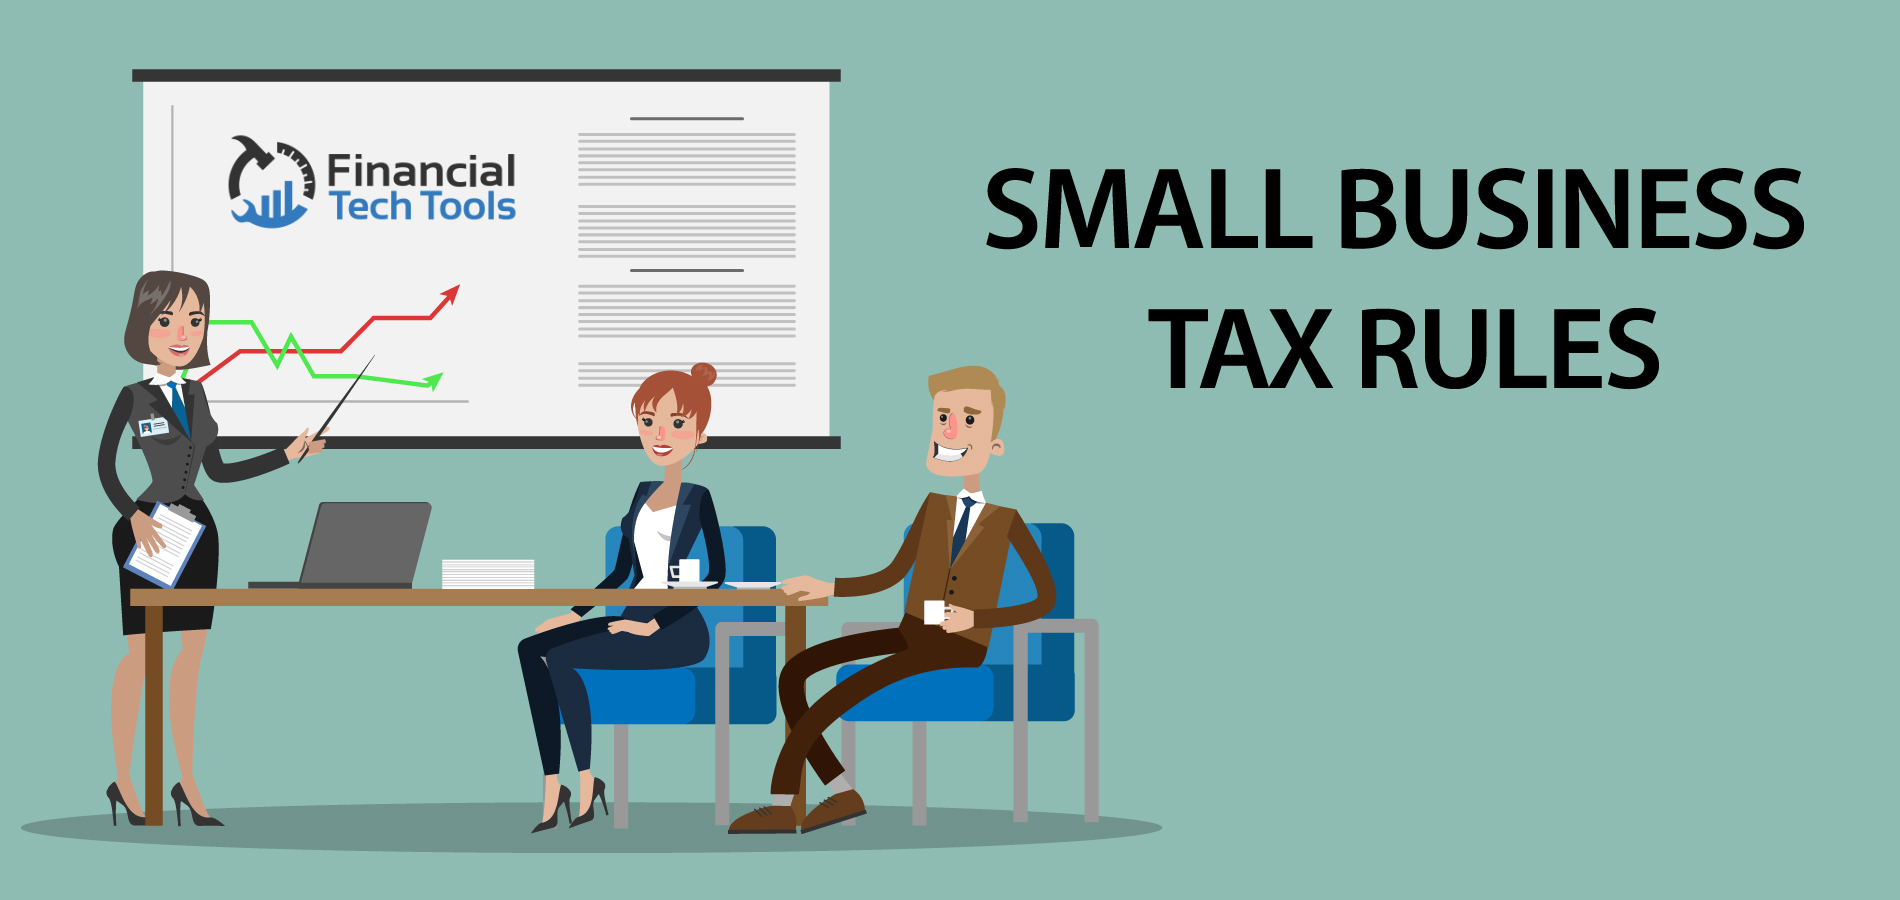 small business tax rules fin tech tools